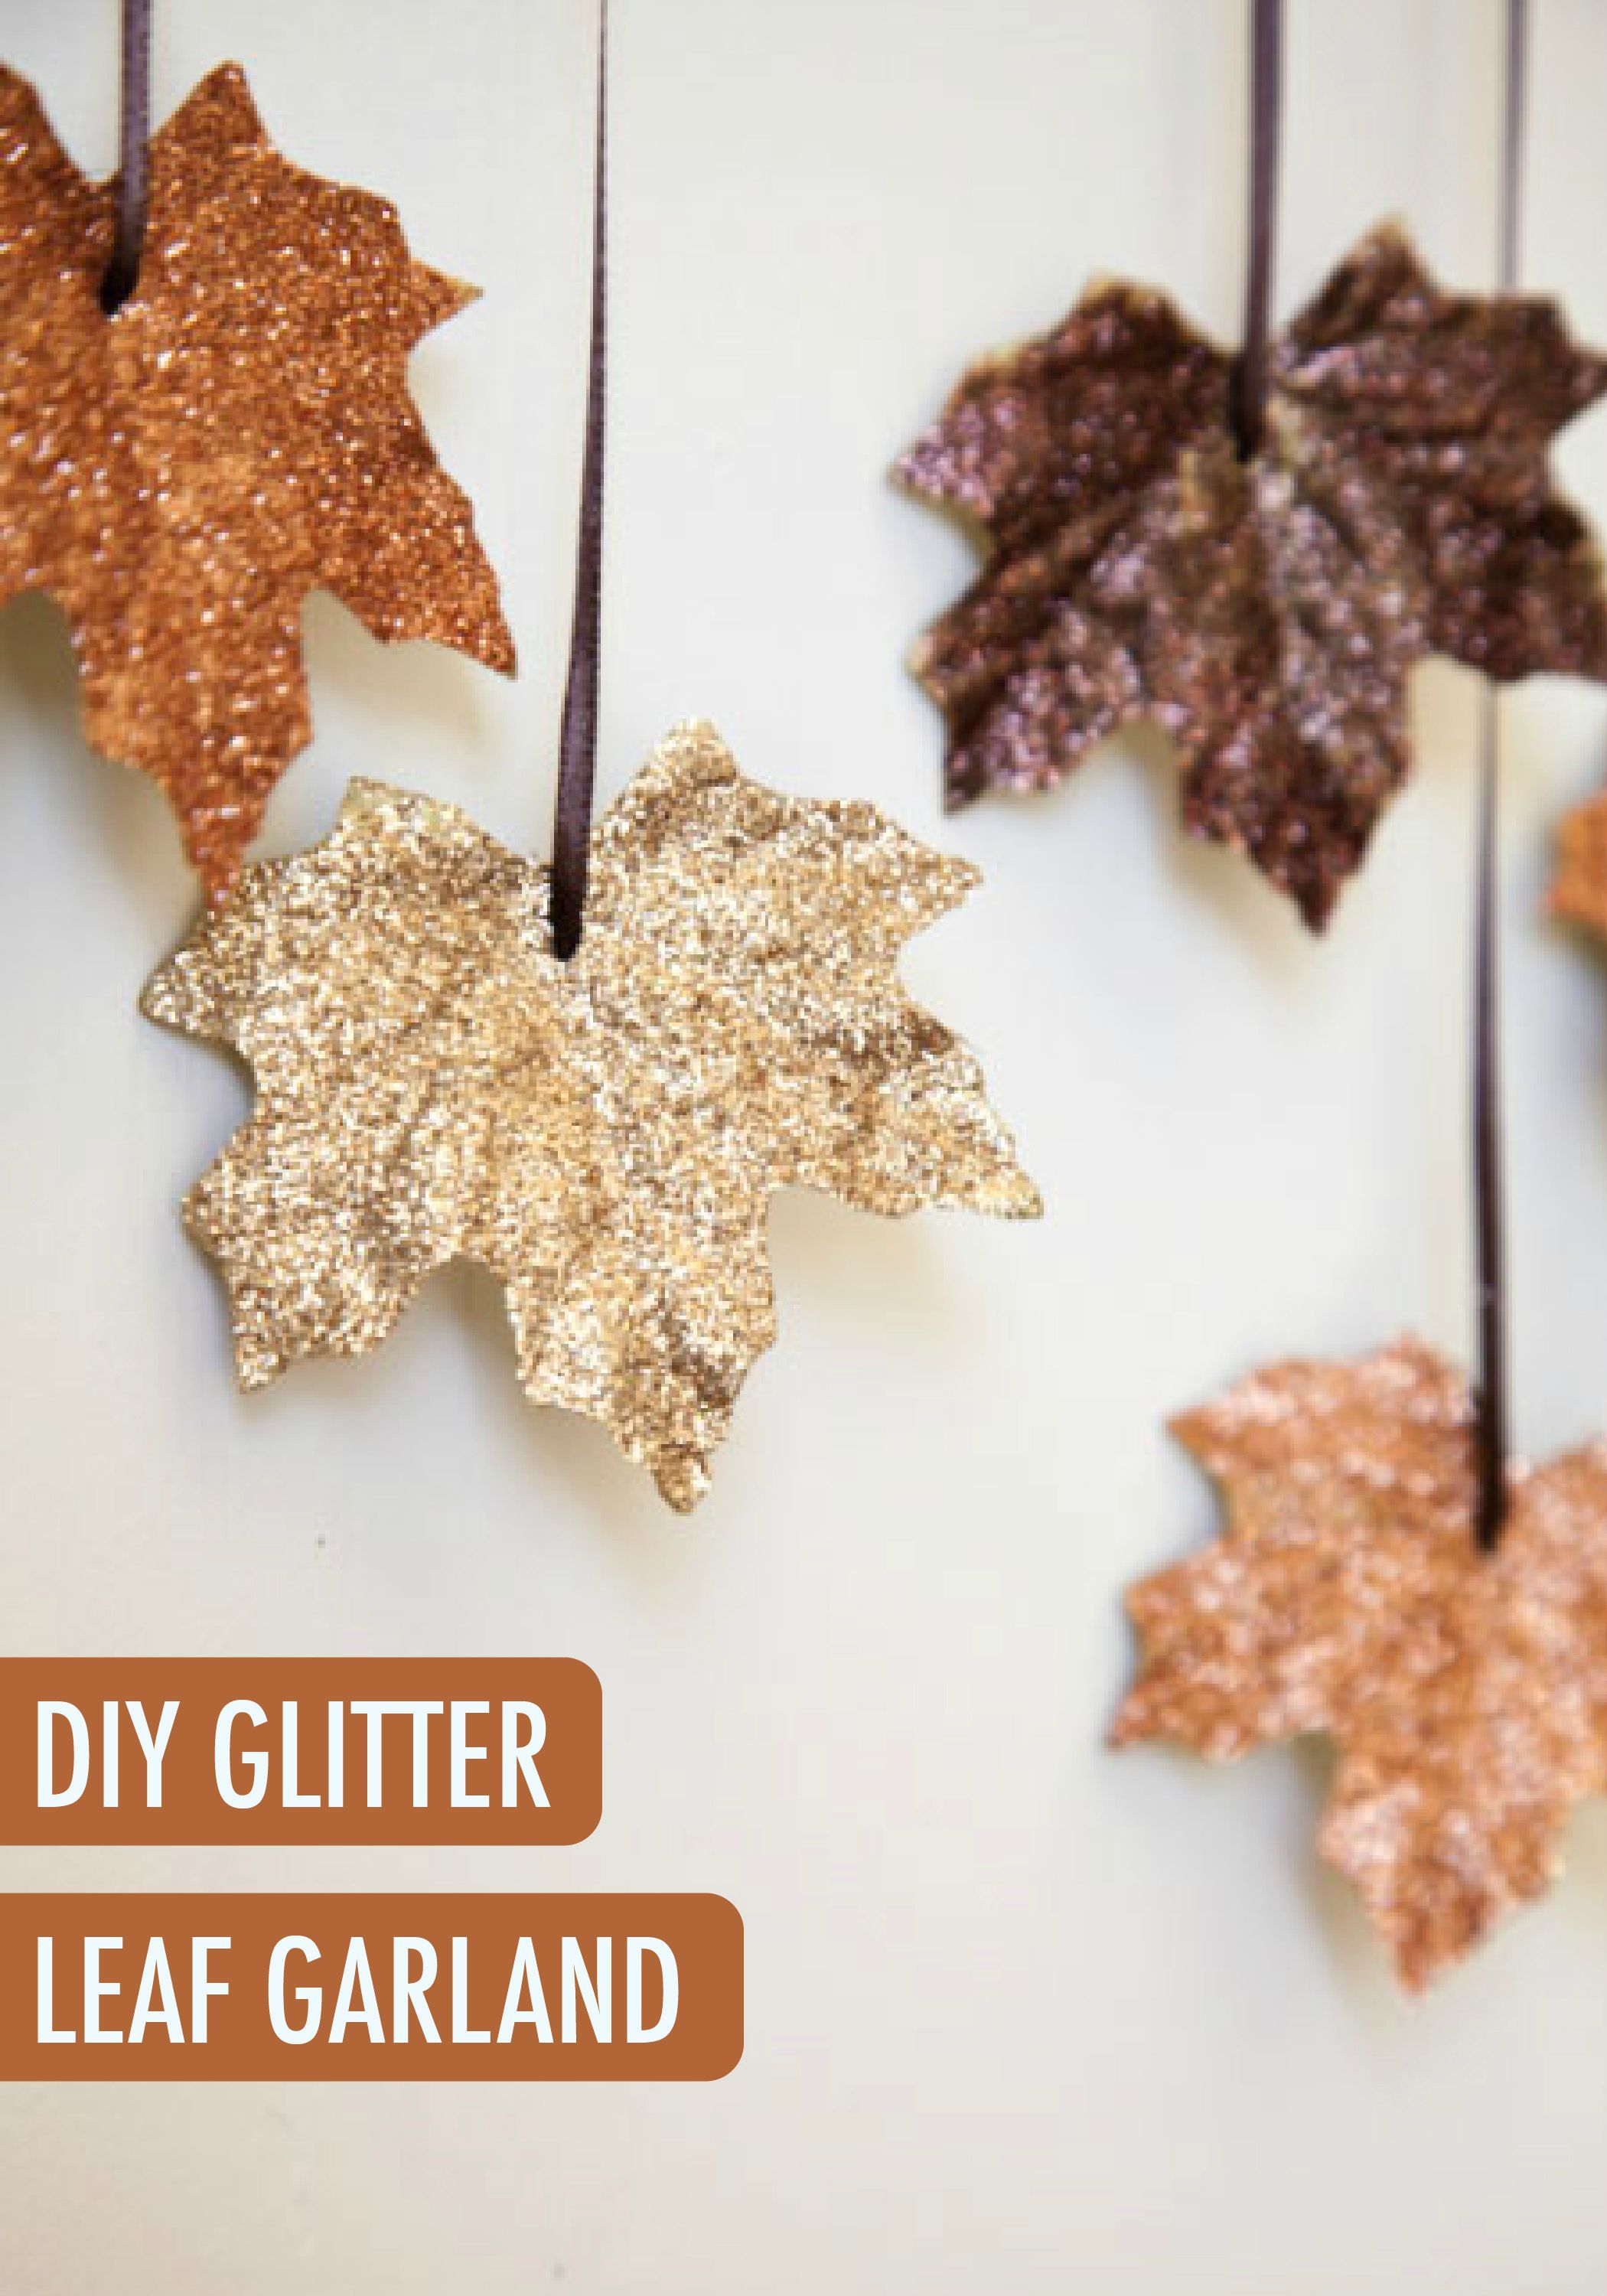 try this diy glitter leaf garland project this weekend with your holidays